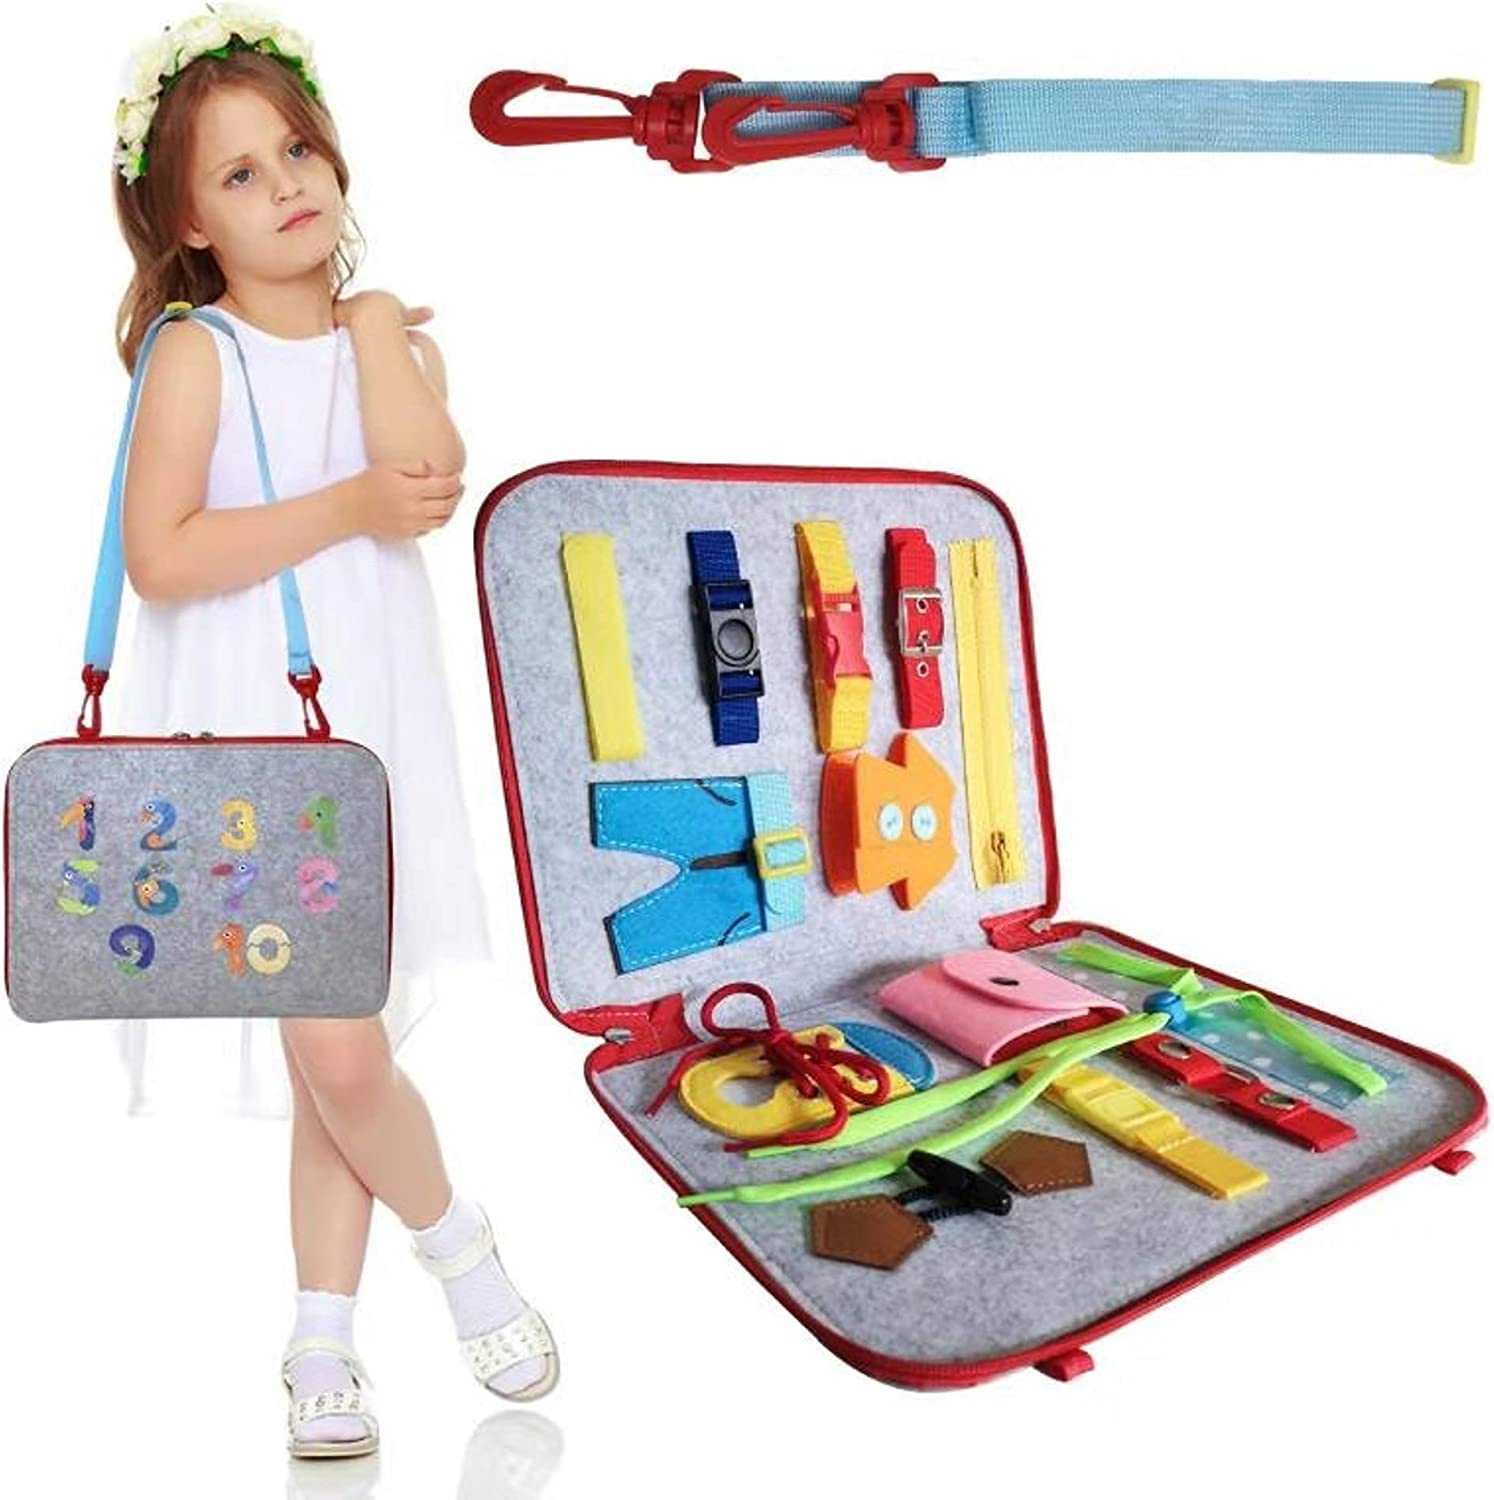 Busy Board for Toddlers 1-6, Travel Toys for Toddlers 1 2 3 4, Montessori Basic Skills Dress Zipper Latch Buckle Learning Book, Great Airplane Carseat Stroller Birthday Gift for Babies Boys and Girls